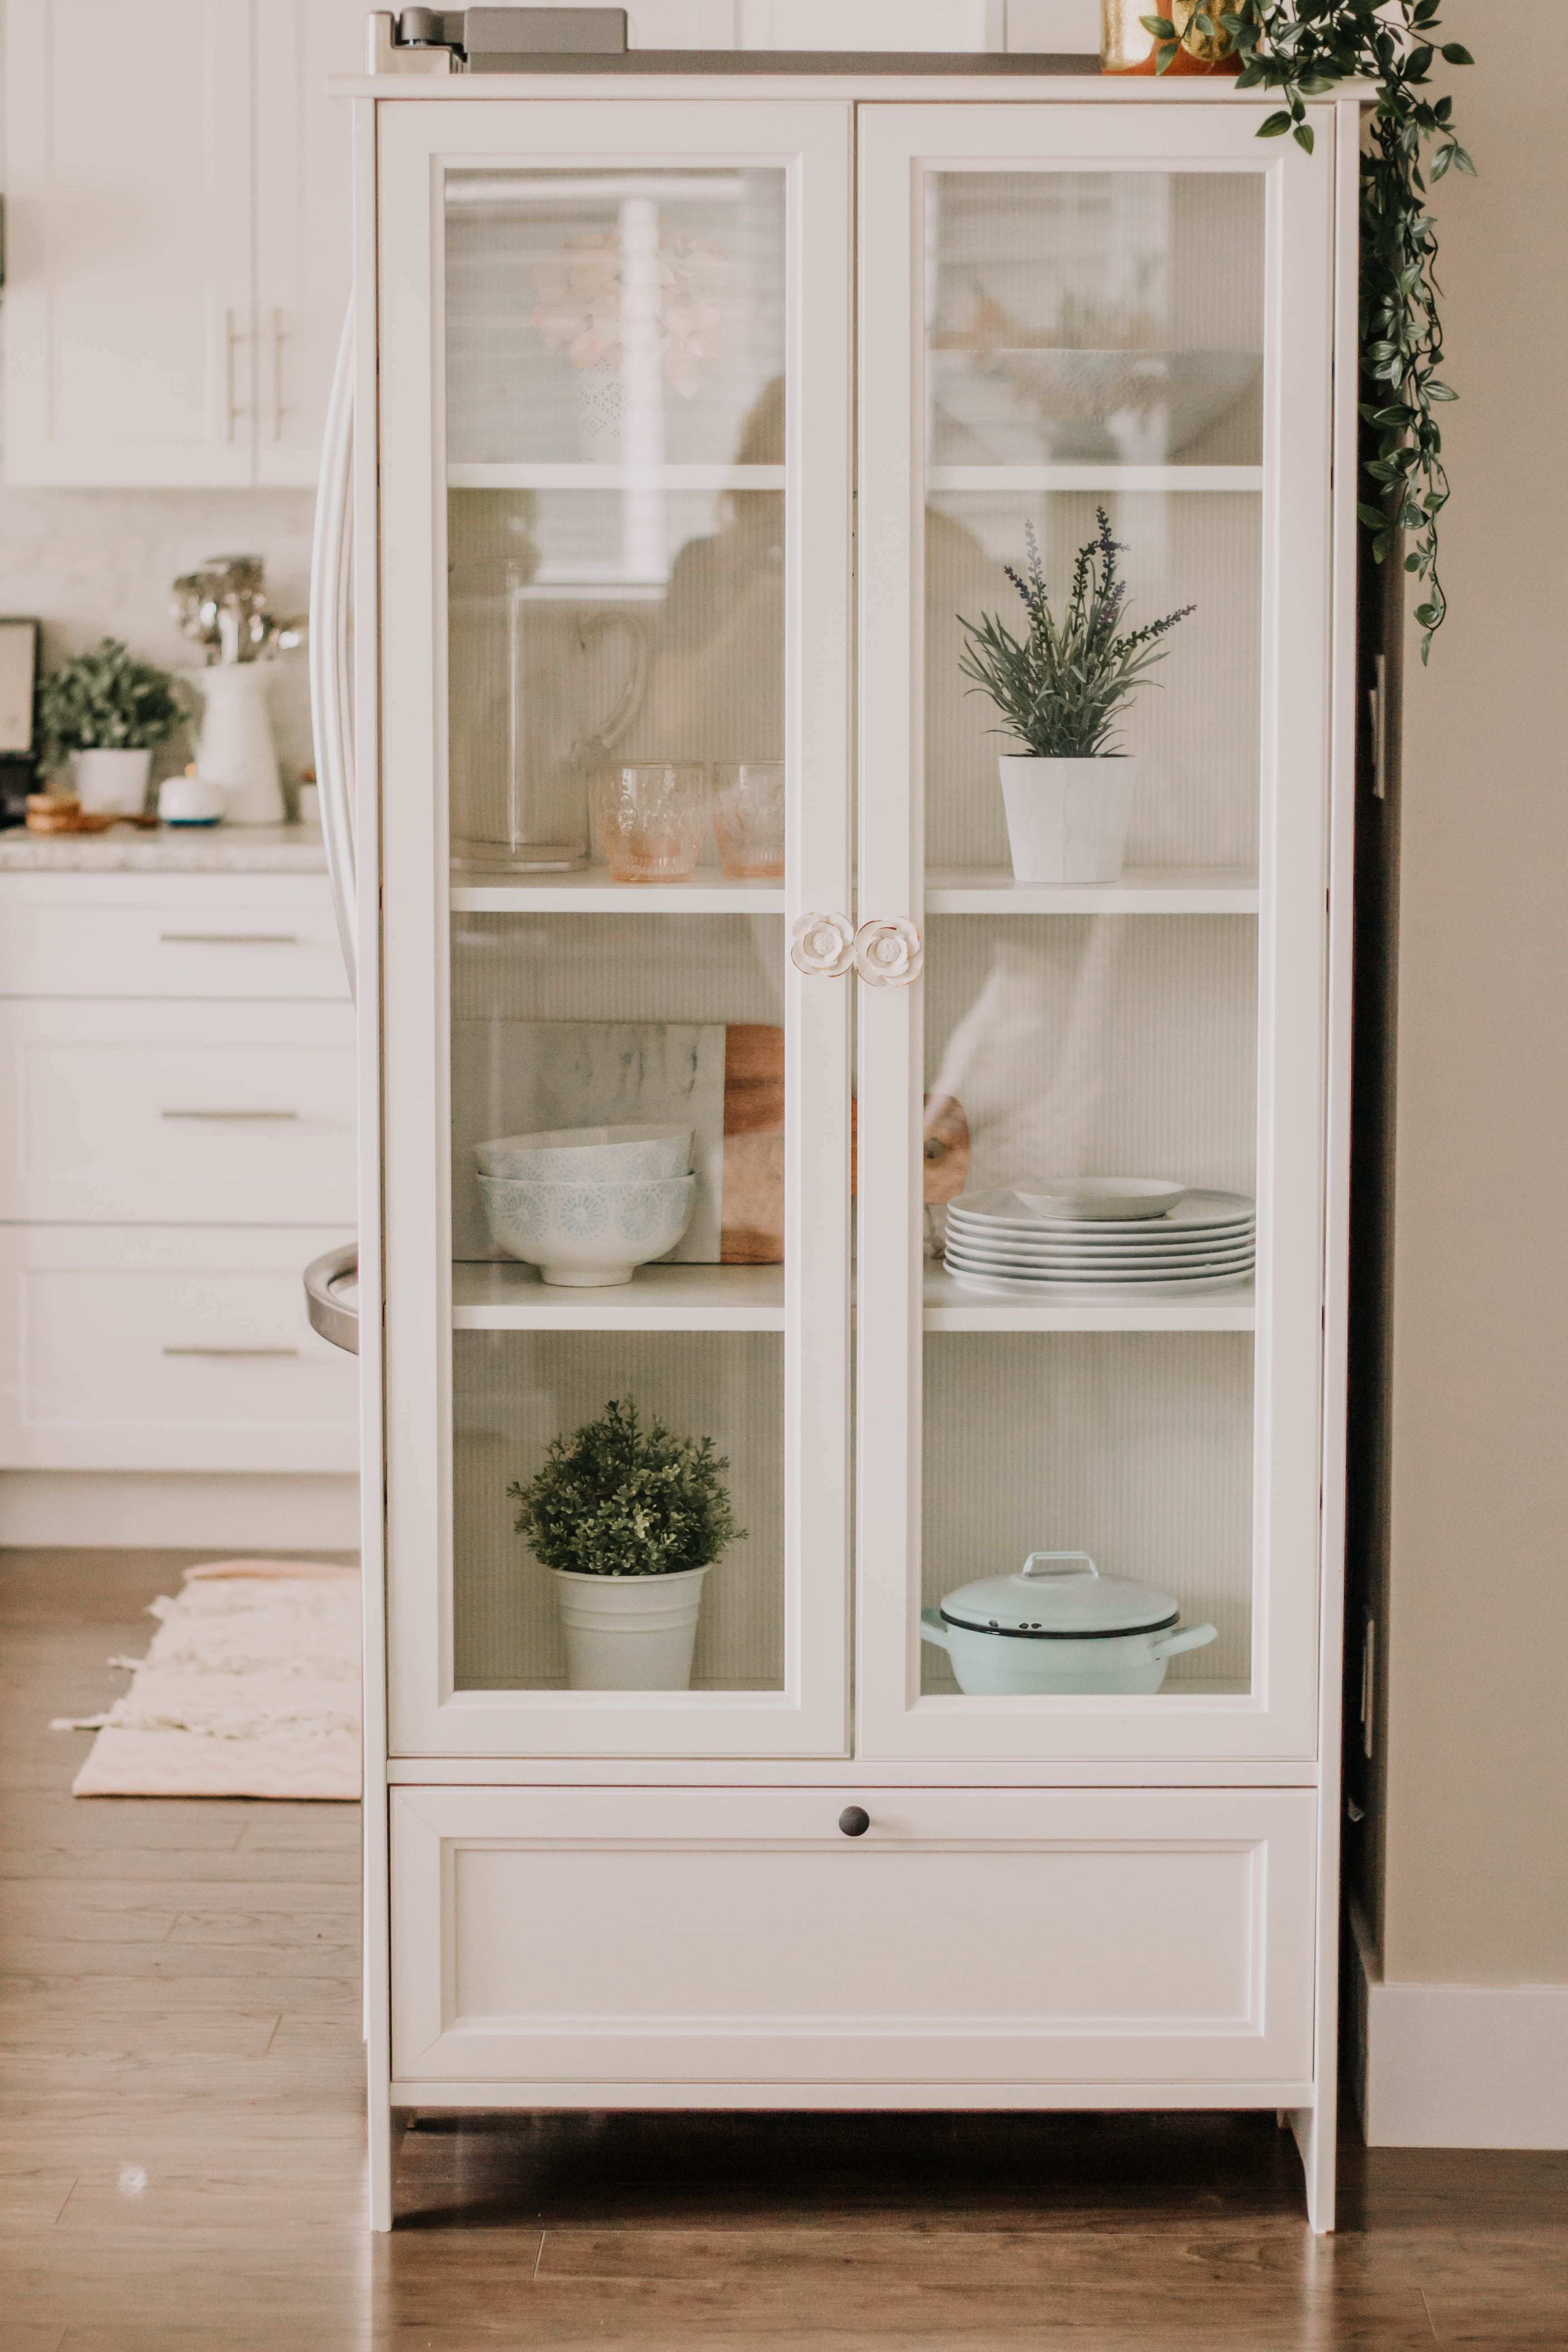 Small Things Ikea Glass Cabinet Kitchen Display Cabinet Ikea